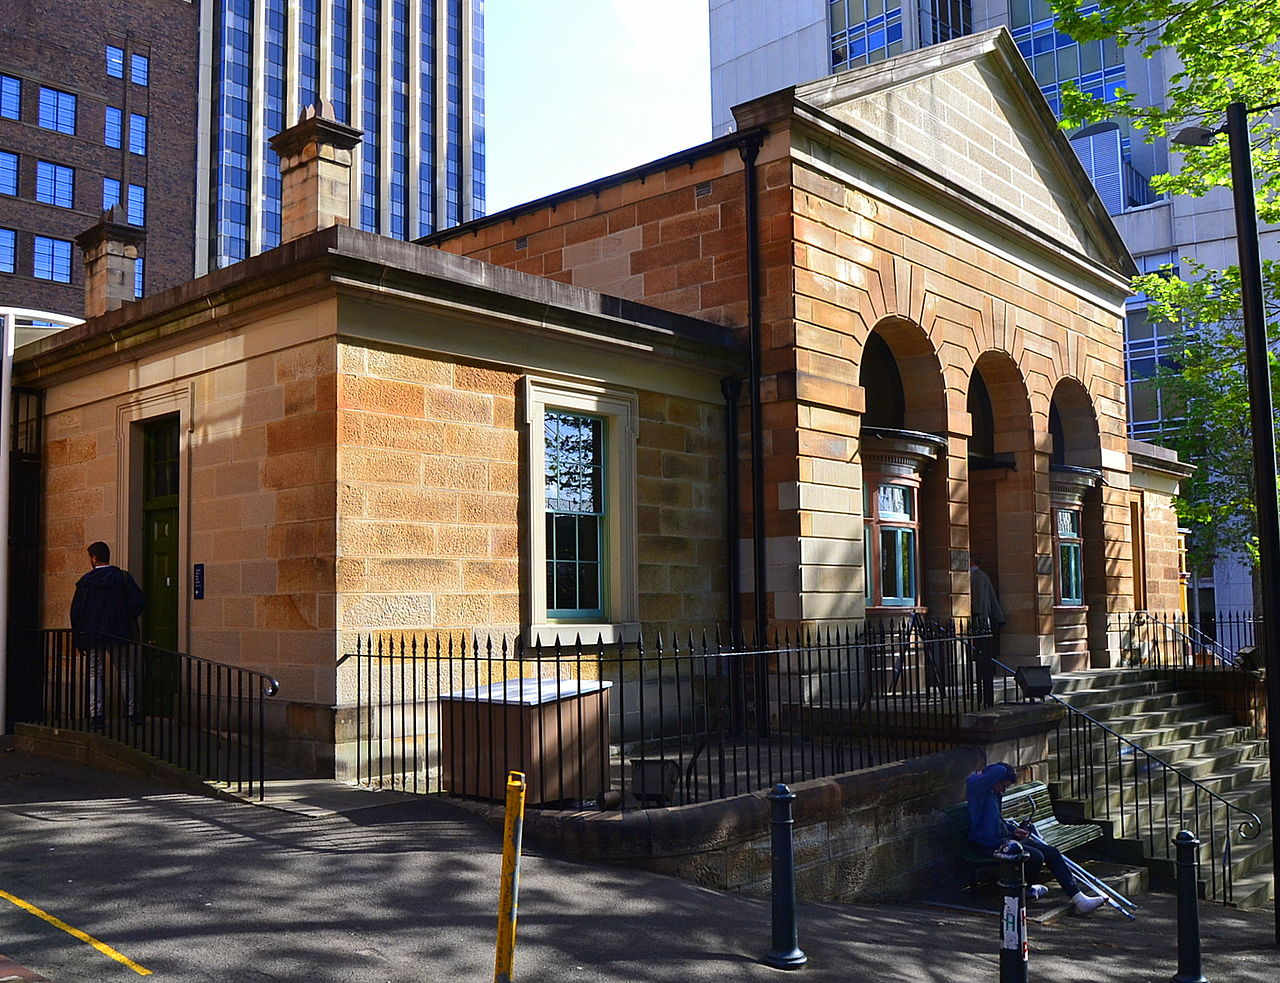 Two interesting and unusual museums in Australia